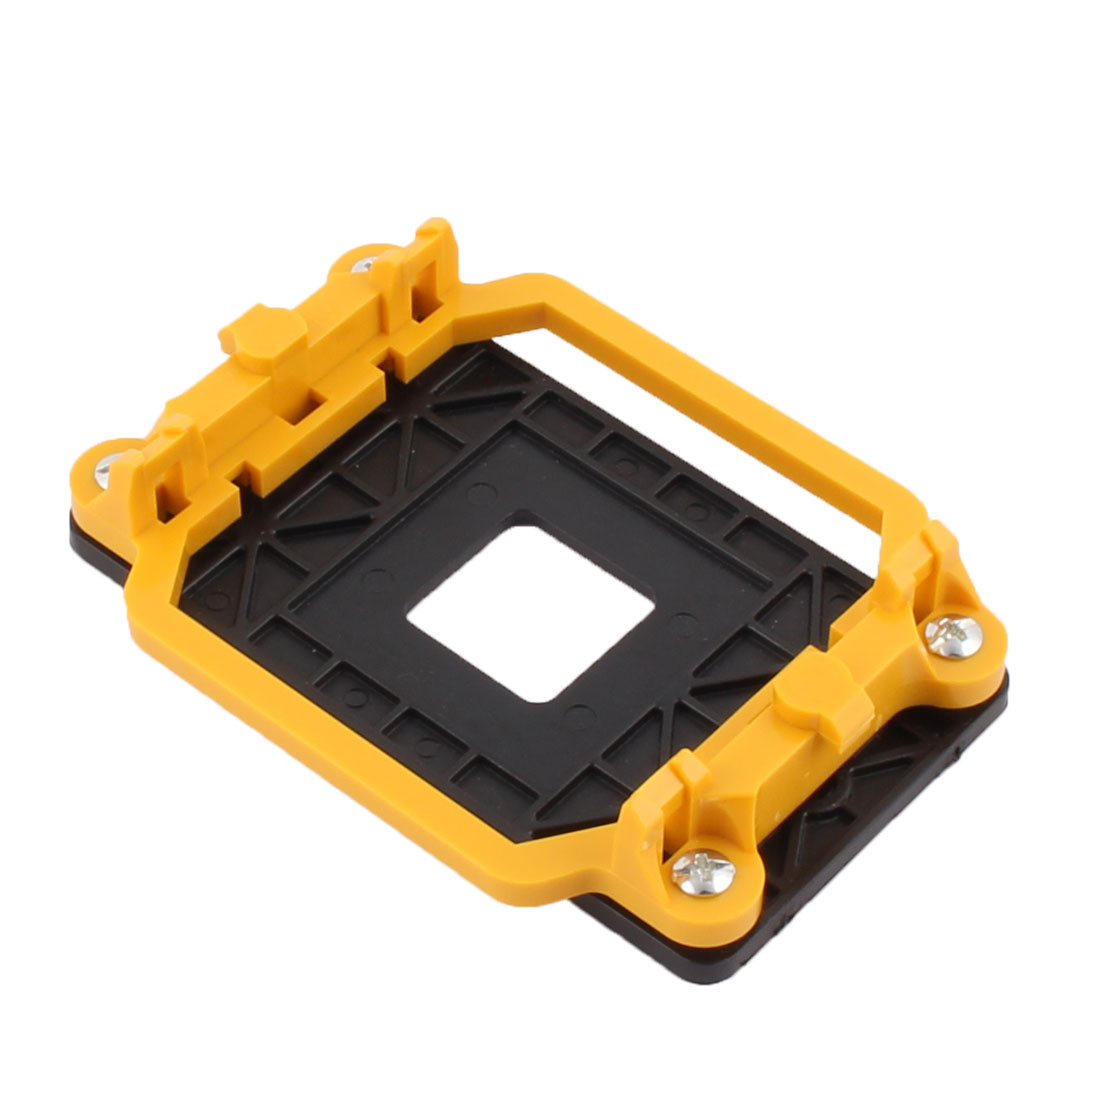 Plastic AMD CPU Cooling Fan Bracket Holder Base Yellow Black for AM2 940 Socket